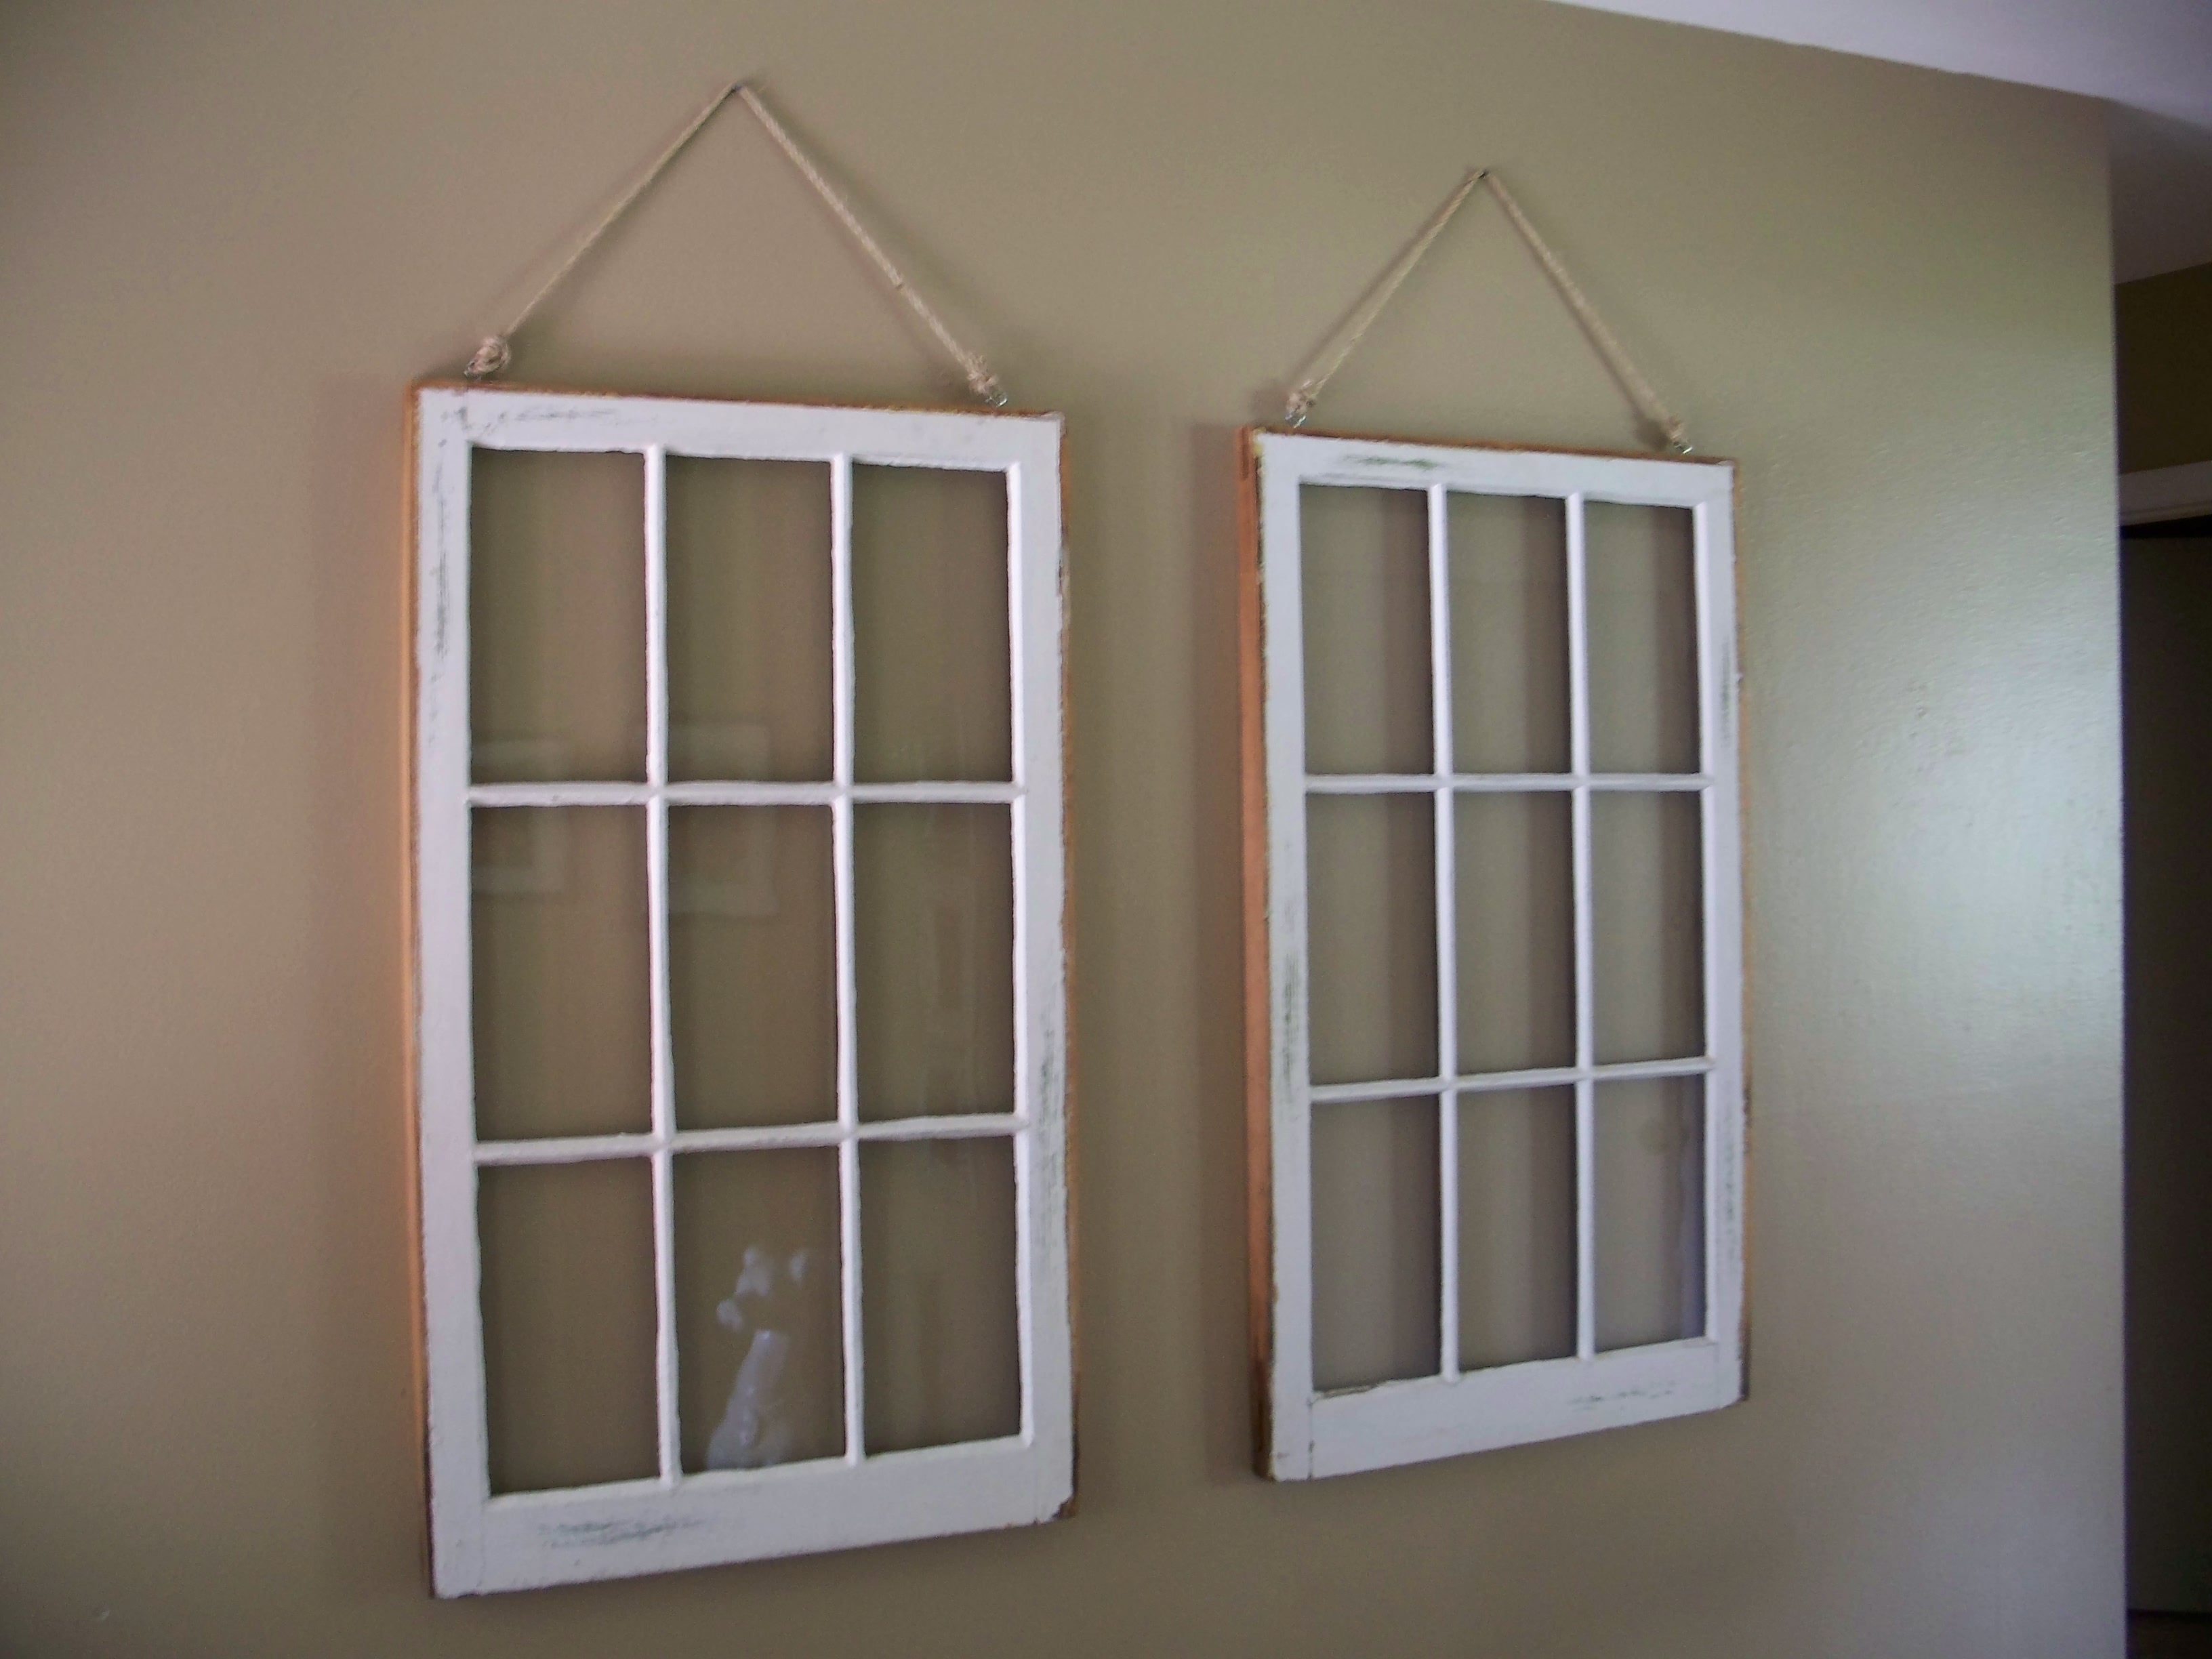 Large Rectangular Mirrors For Walls Bathroom Mirrors And